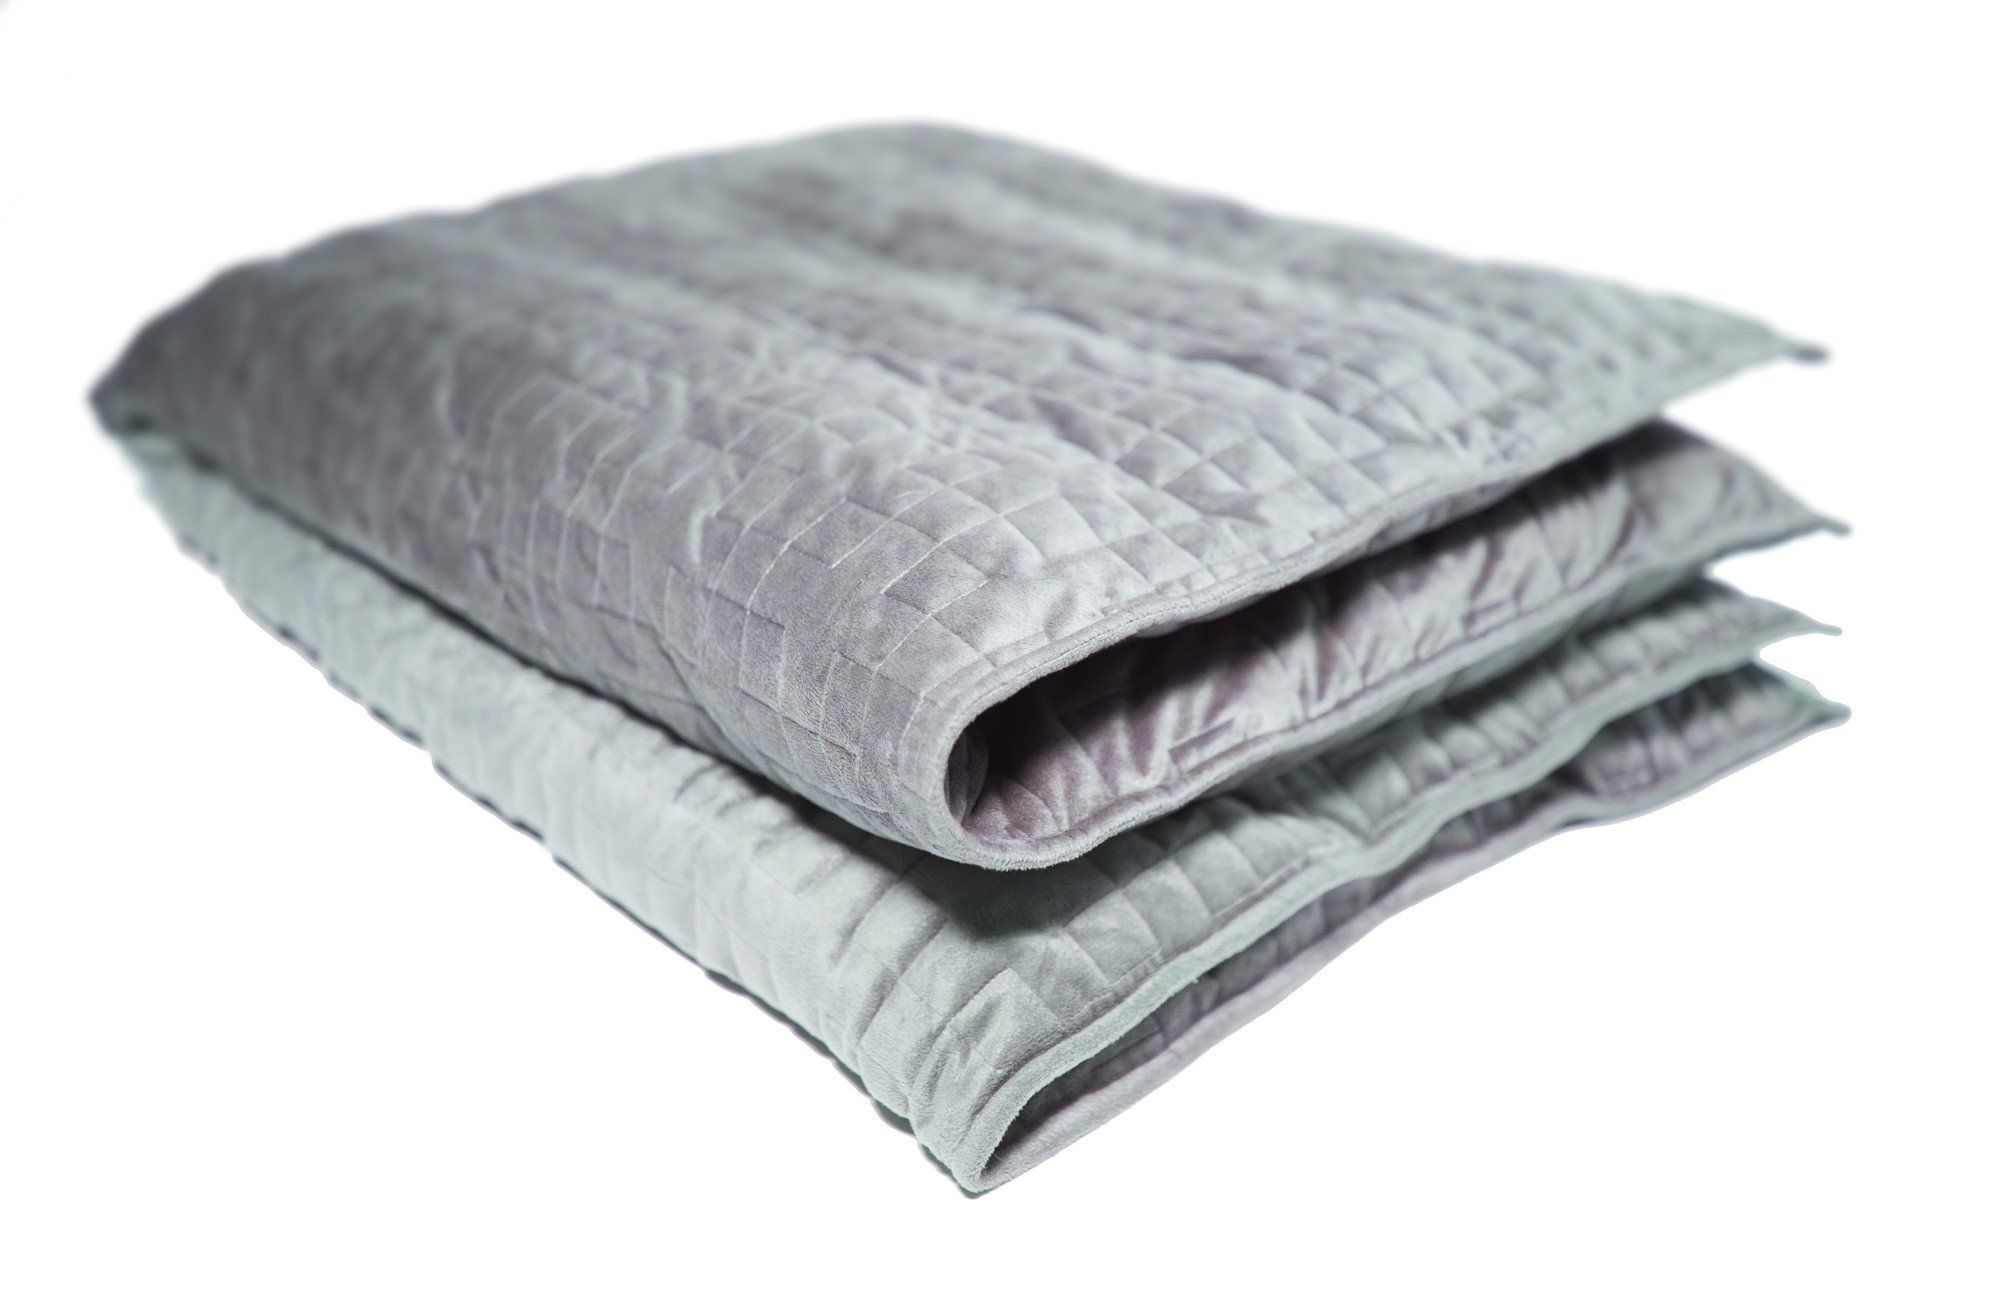 Gravity Blanket Gravity Blanket Weighted Blanket For Adults Weighted Blanket